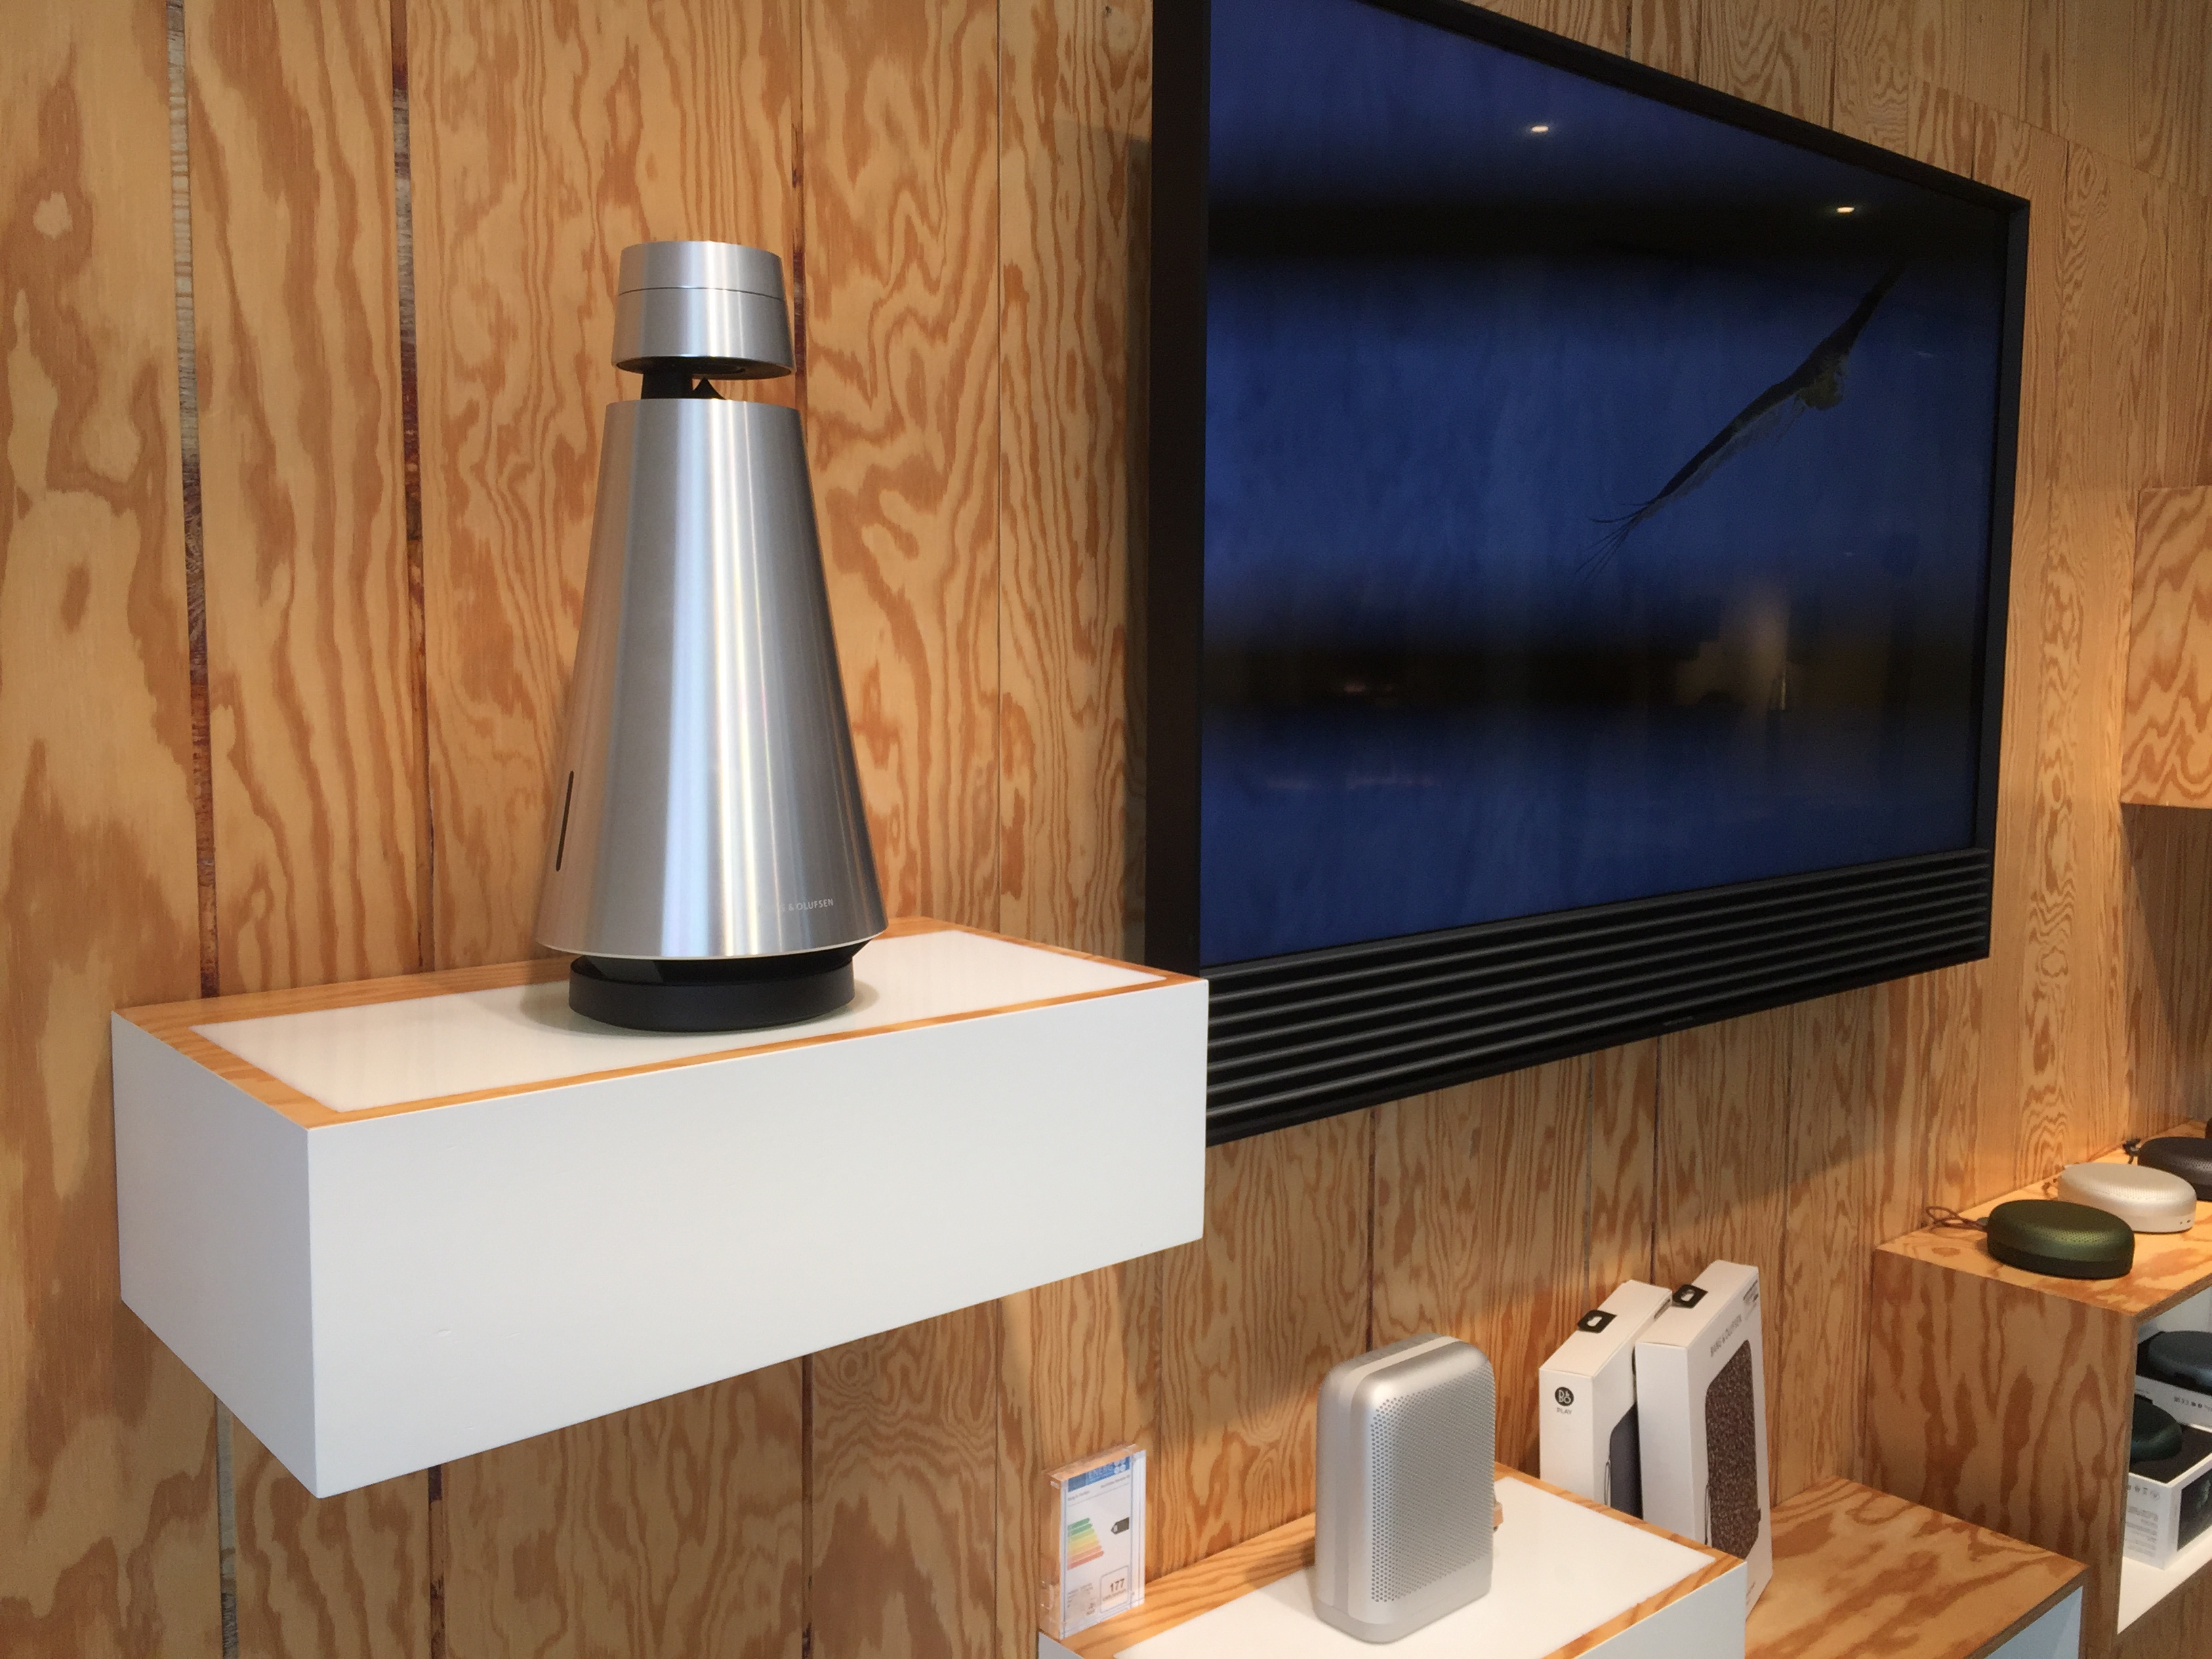 Dockingstation voor BeoSound 1